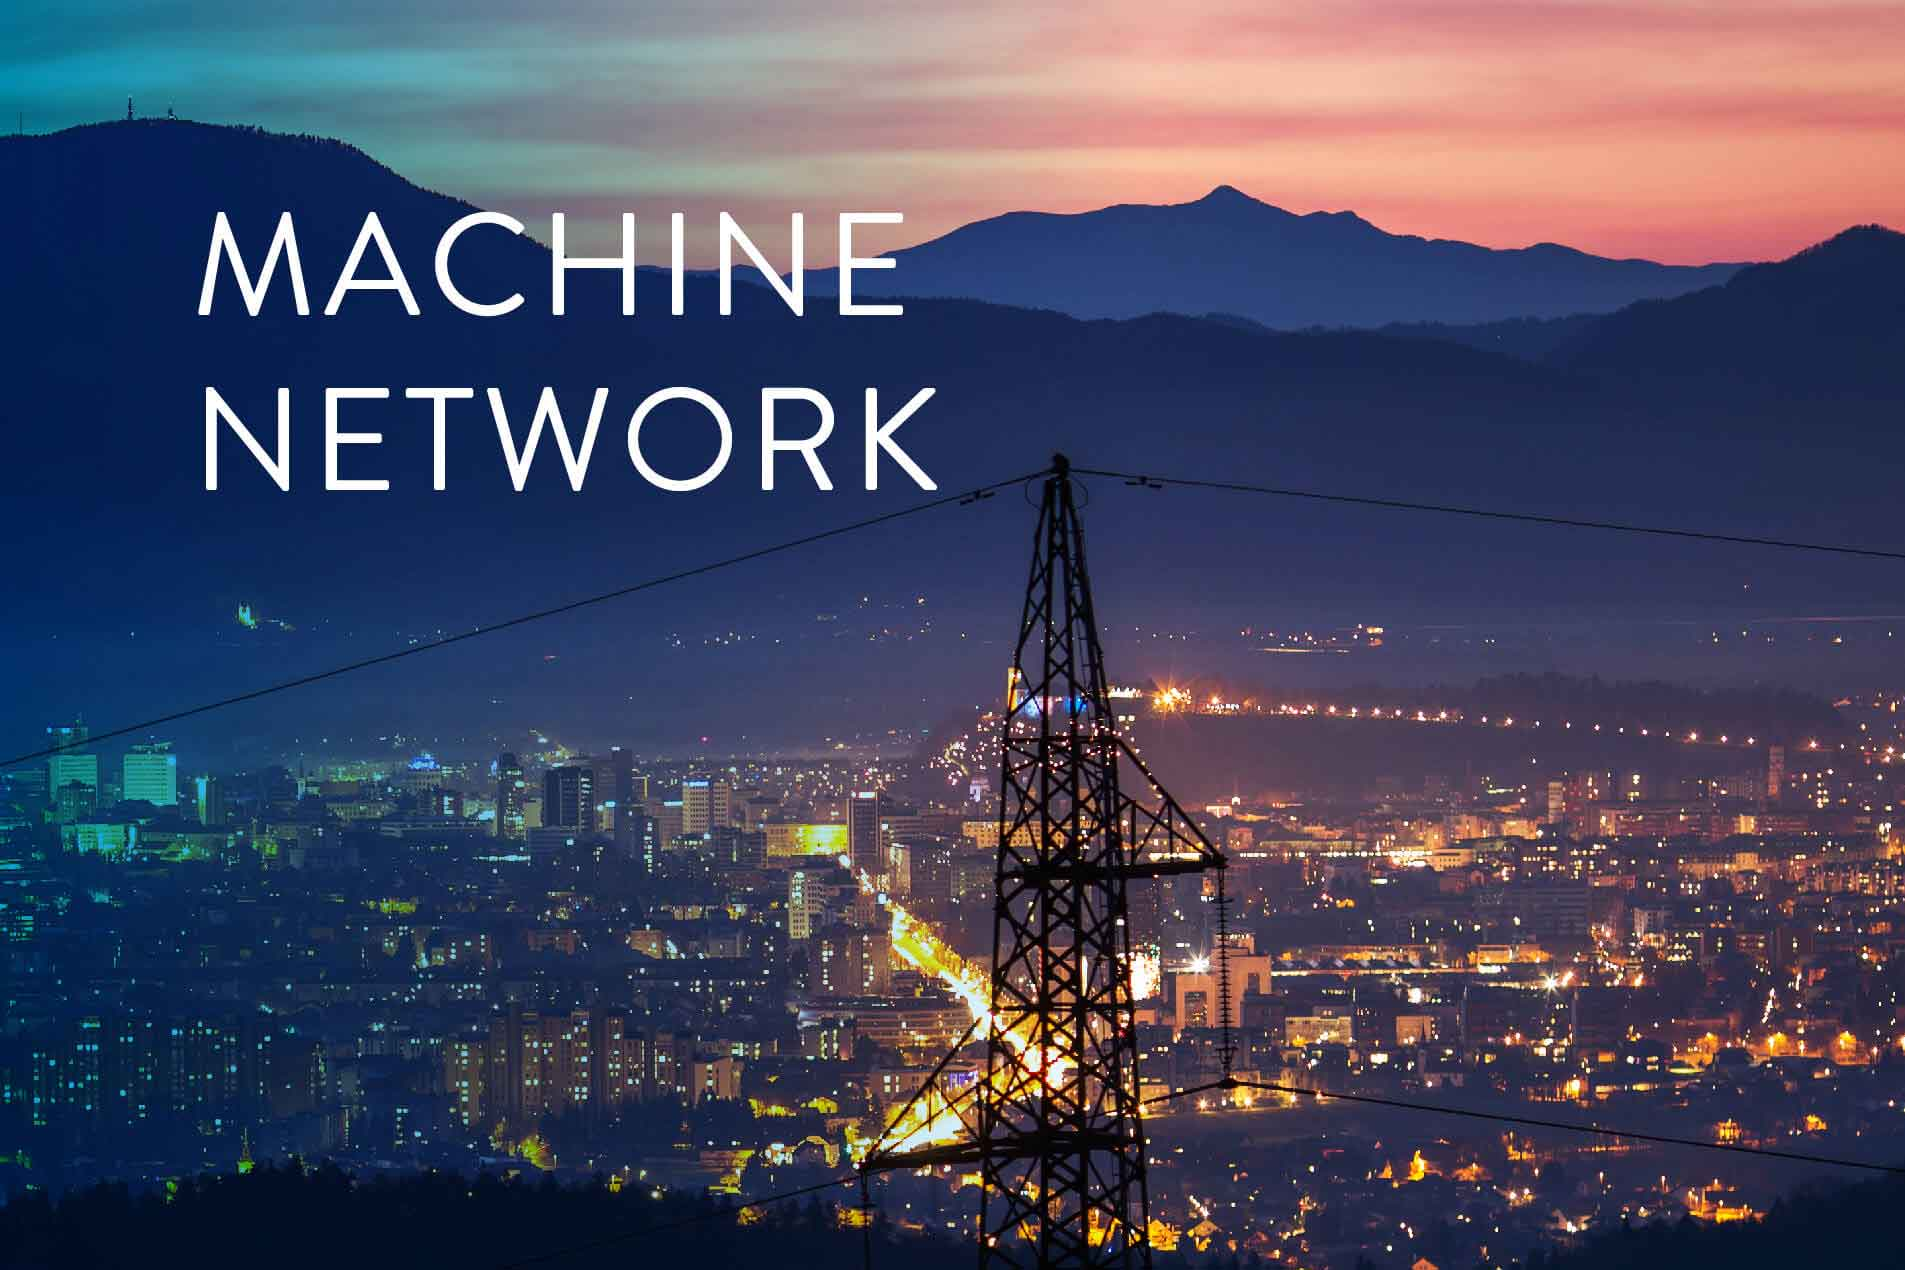 The Machine Network is live in cities across the United States